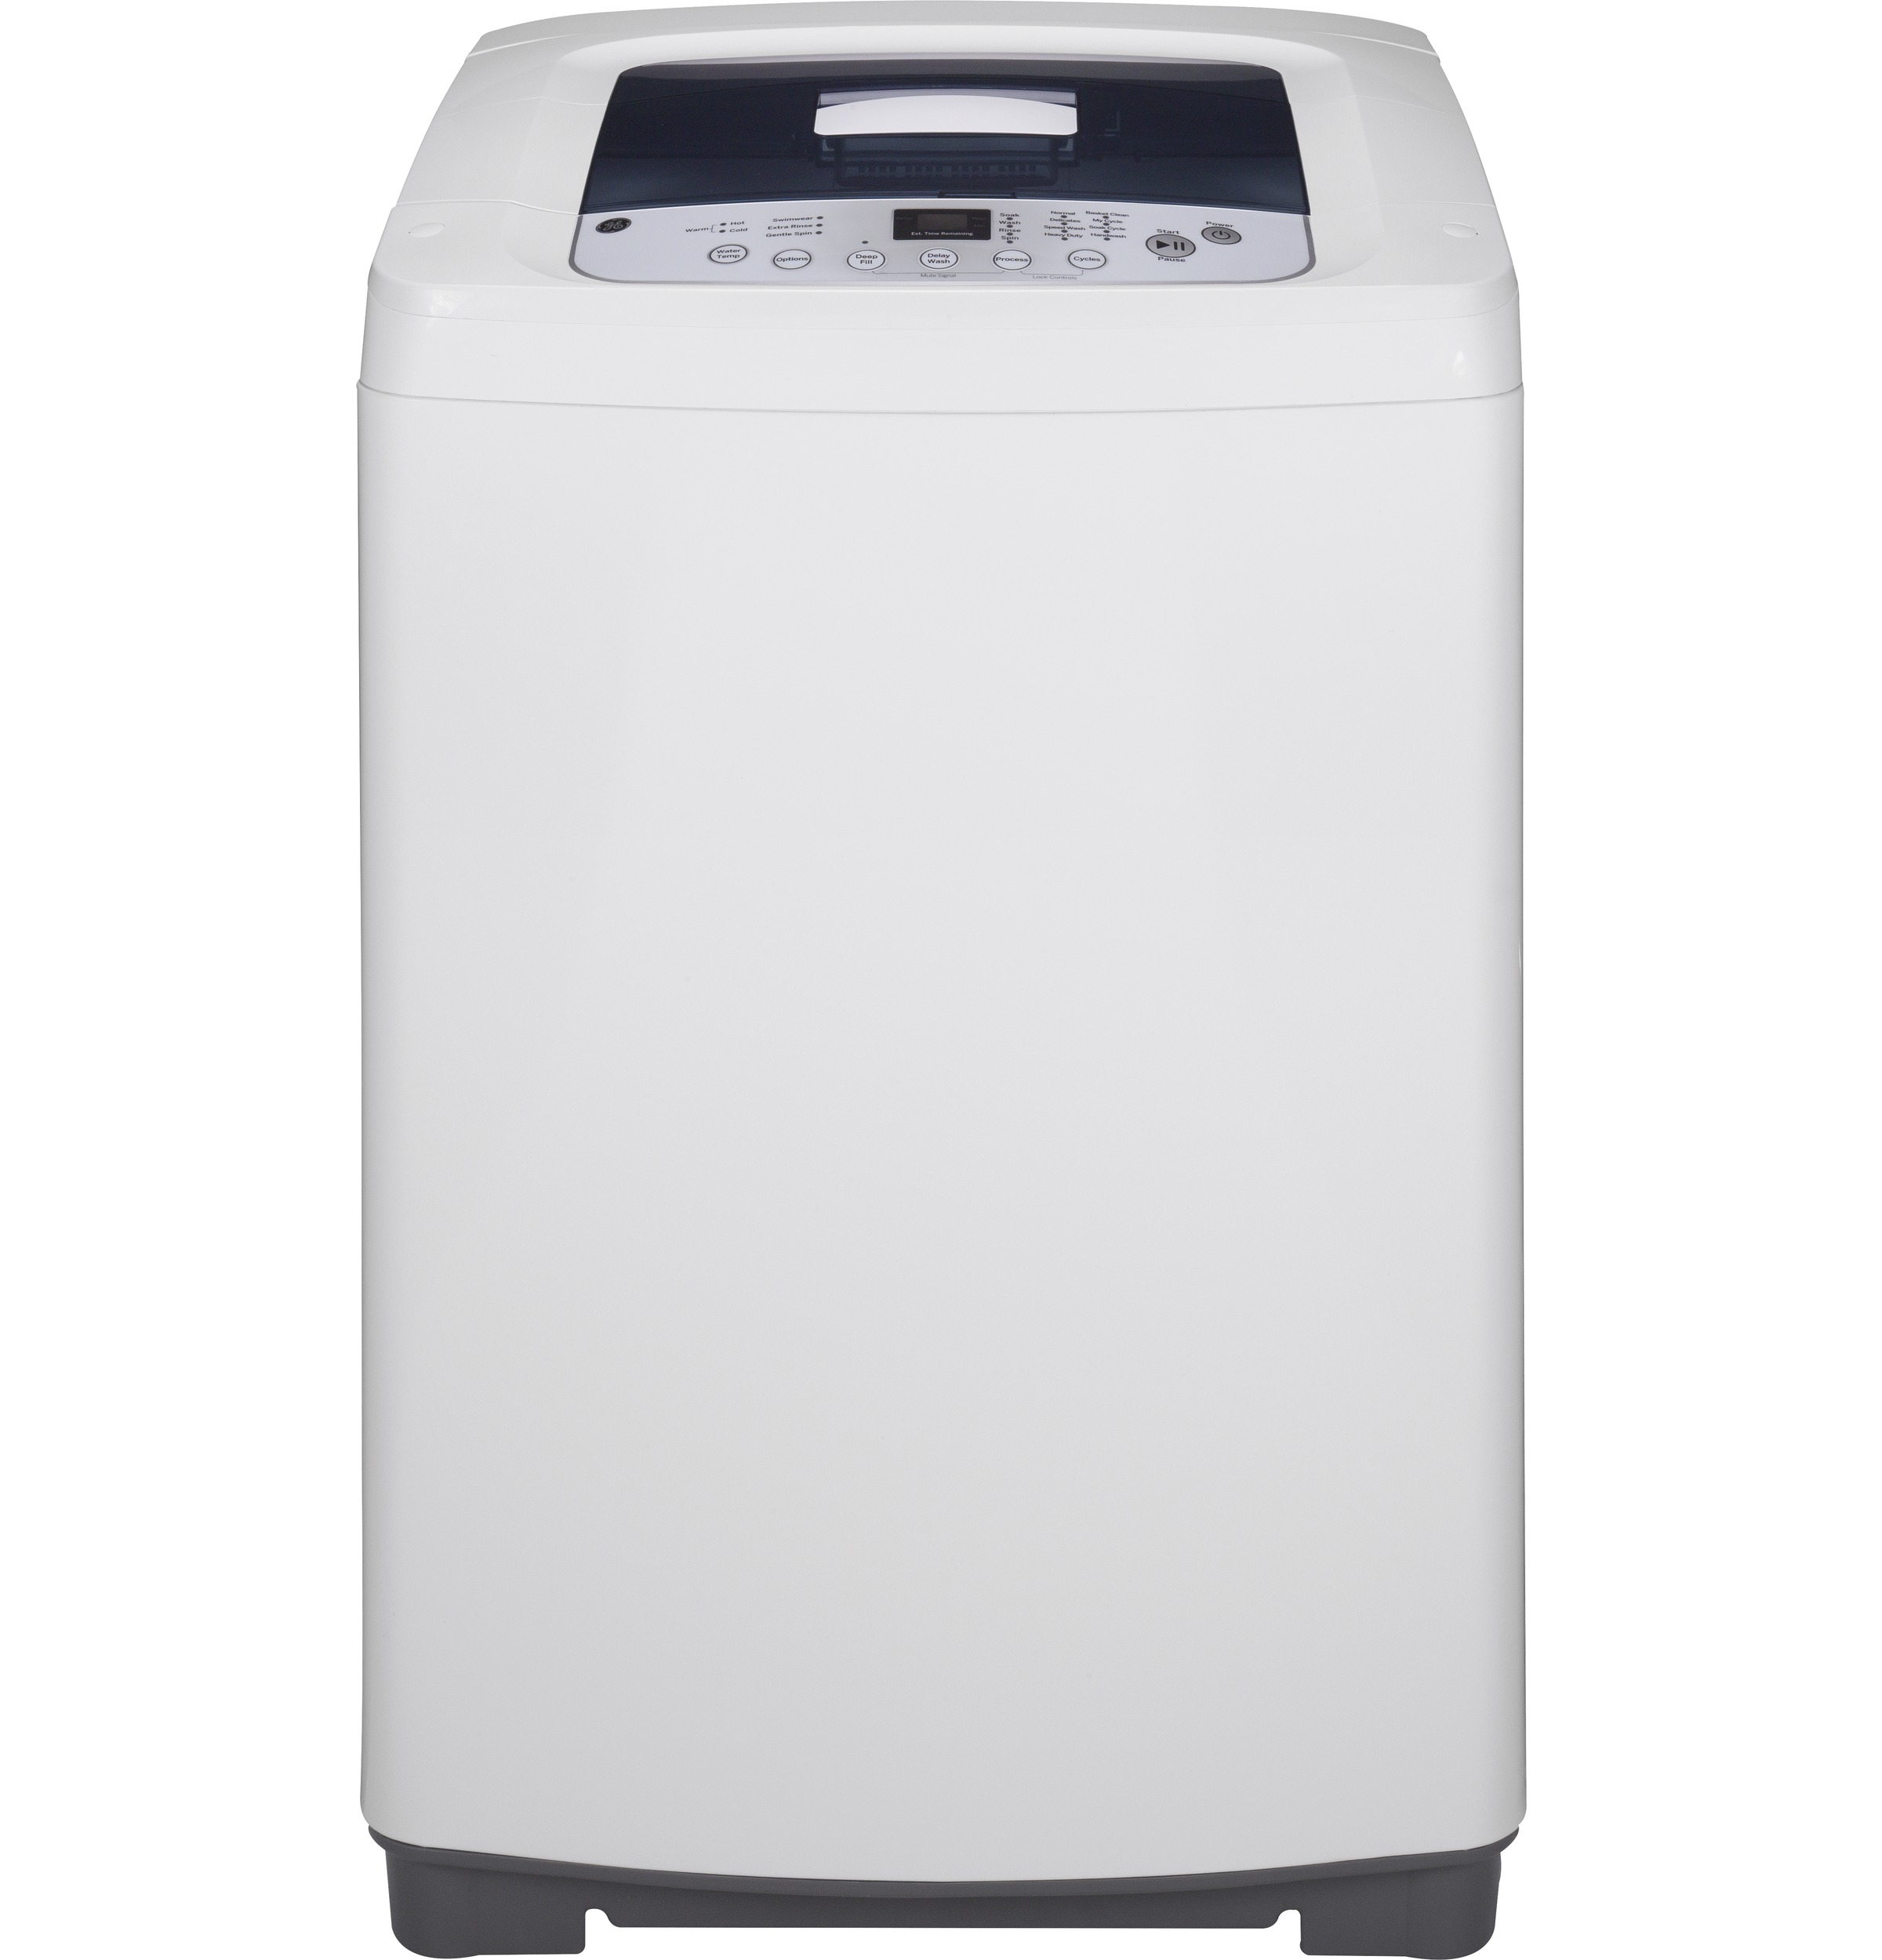 haier 2.1 portable washer manual